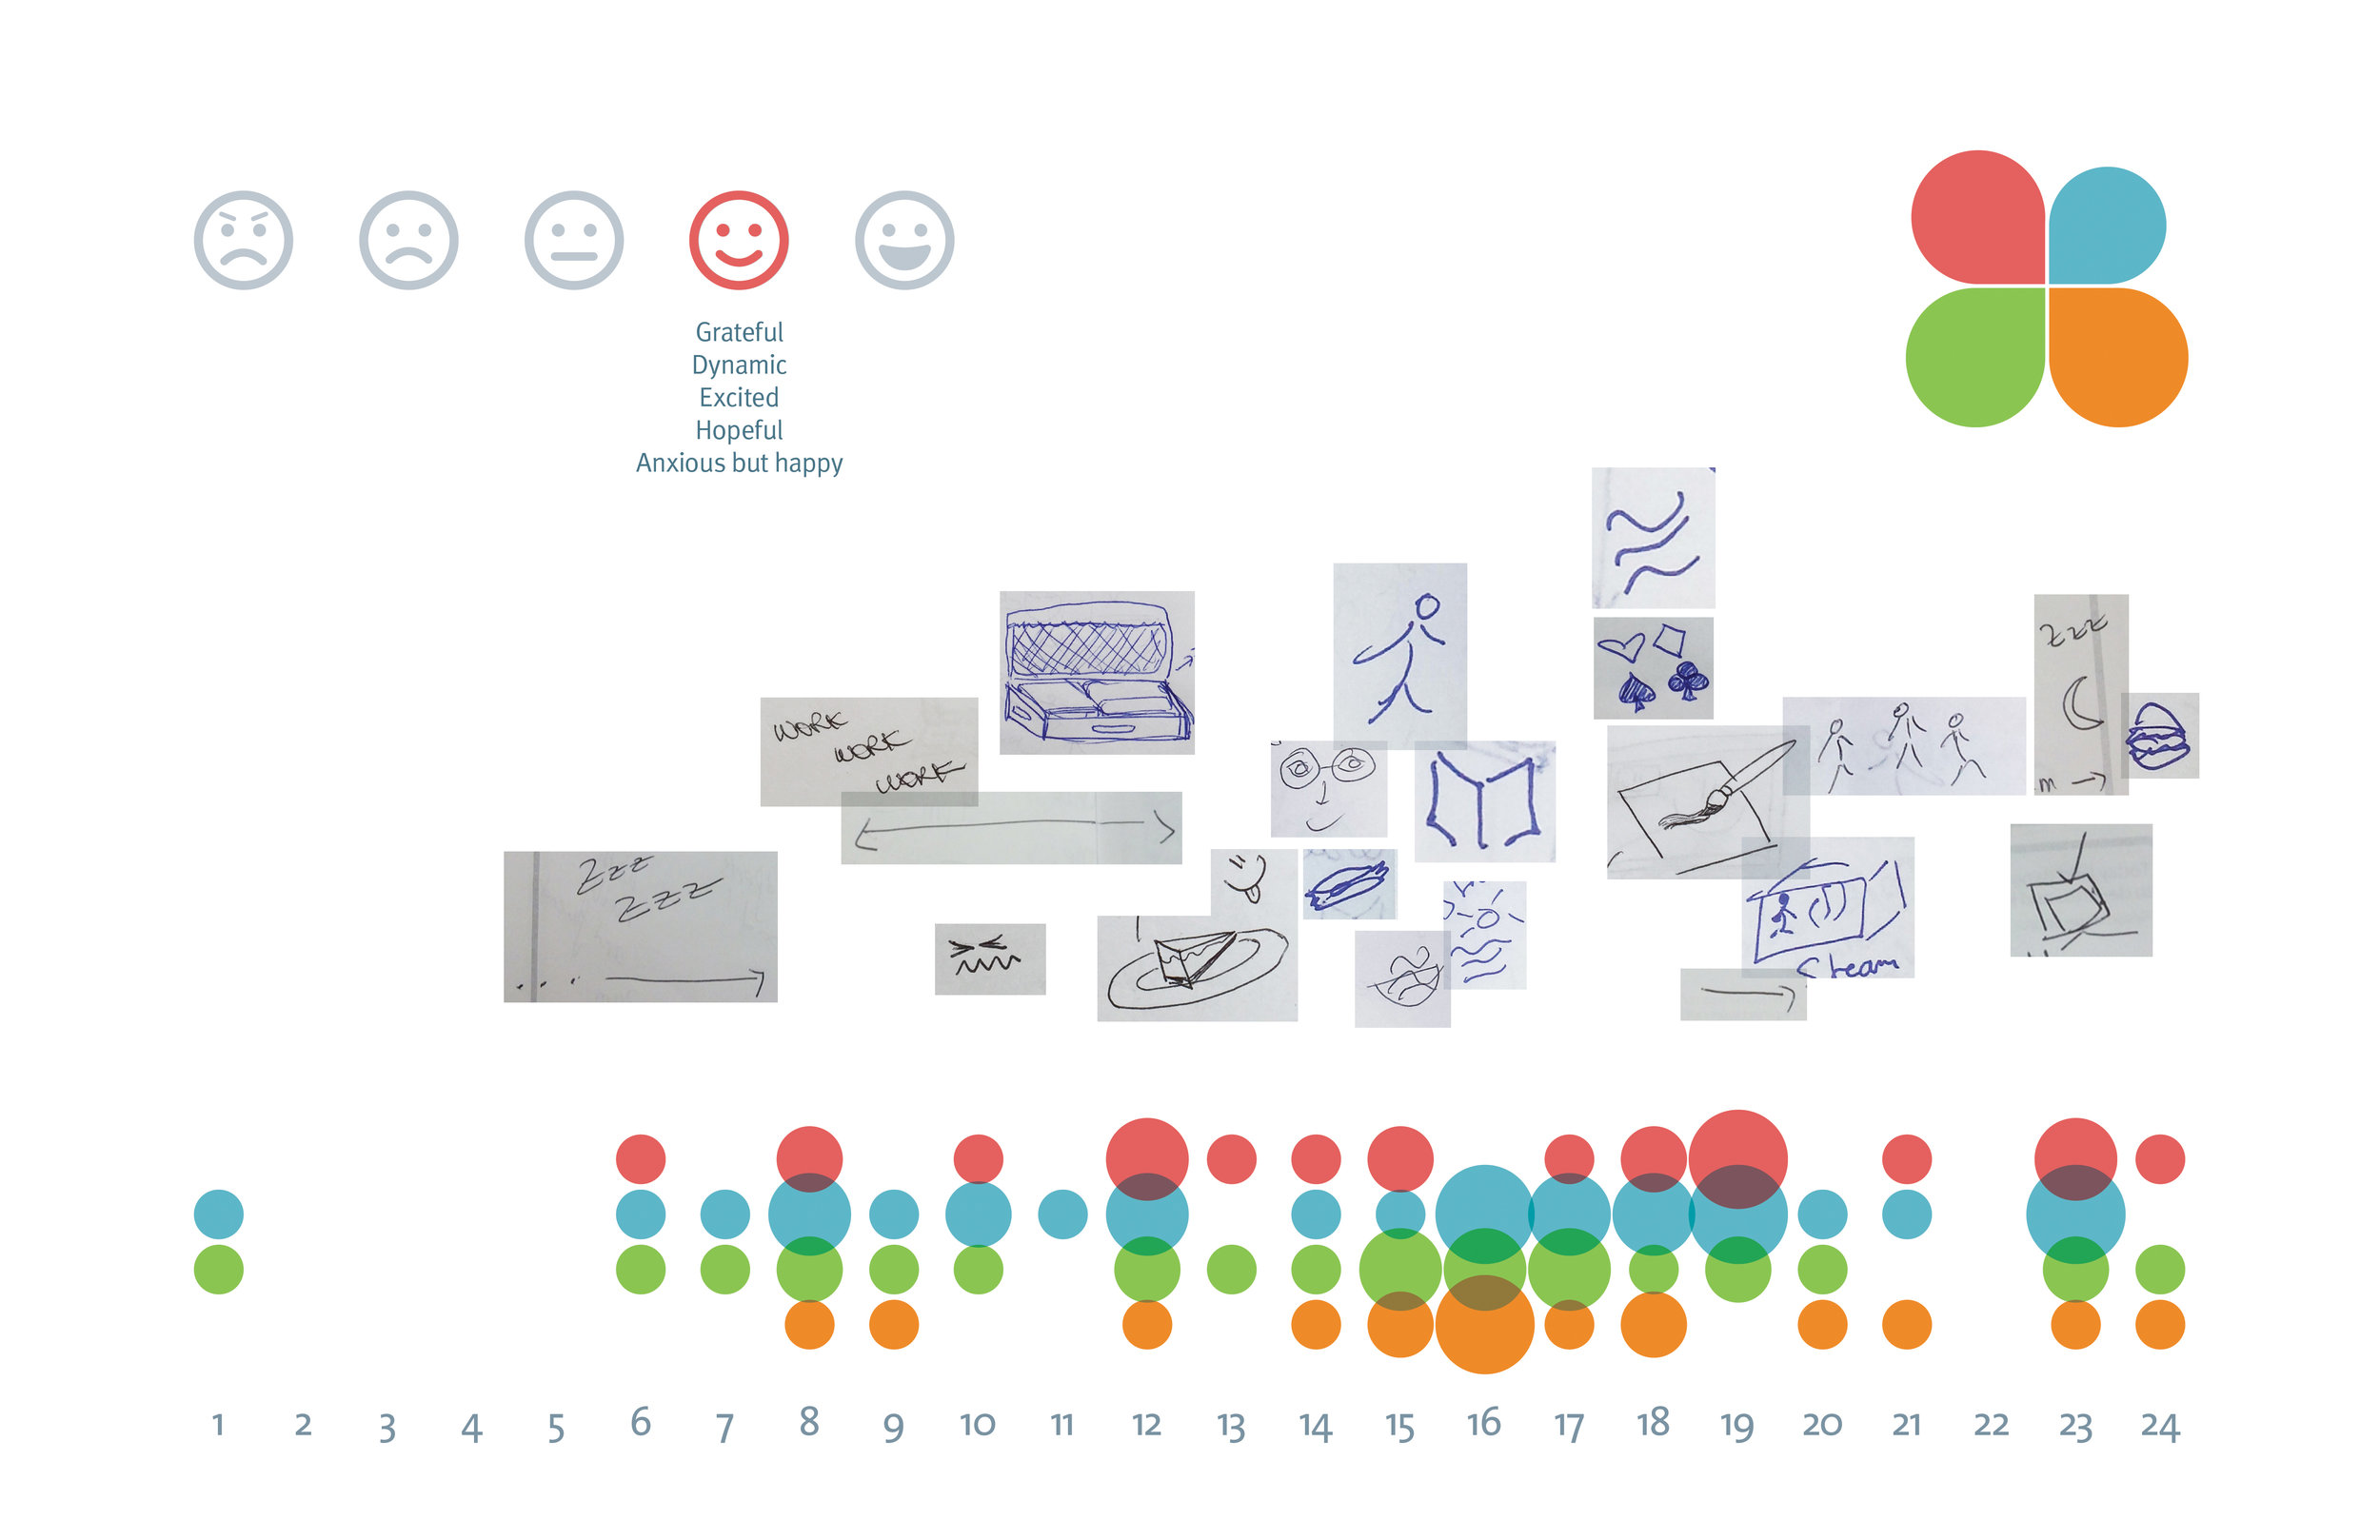 Infographic_Journal-CoCreation_20170319-05.jpg